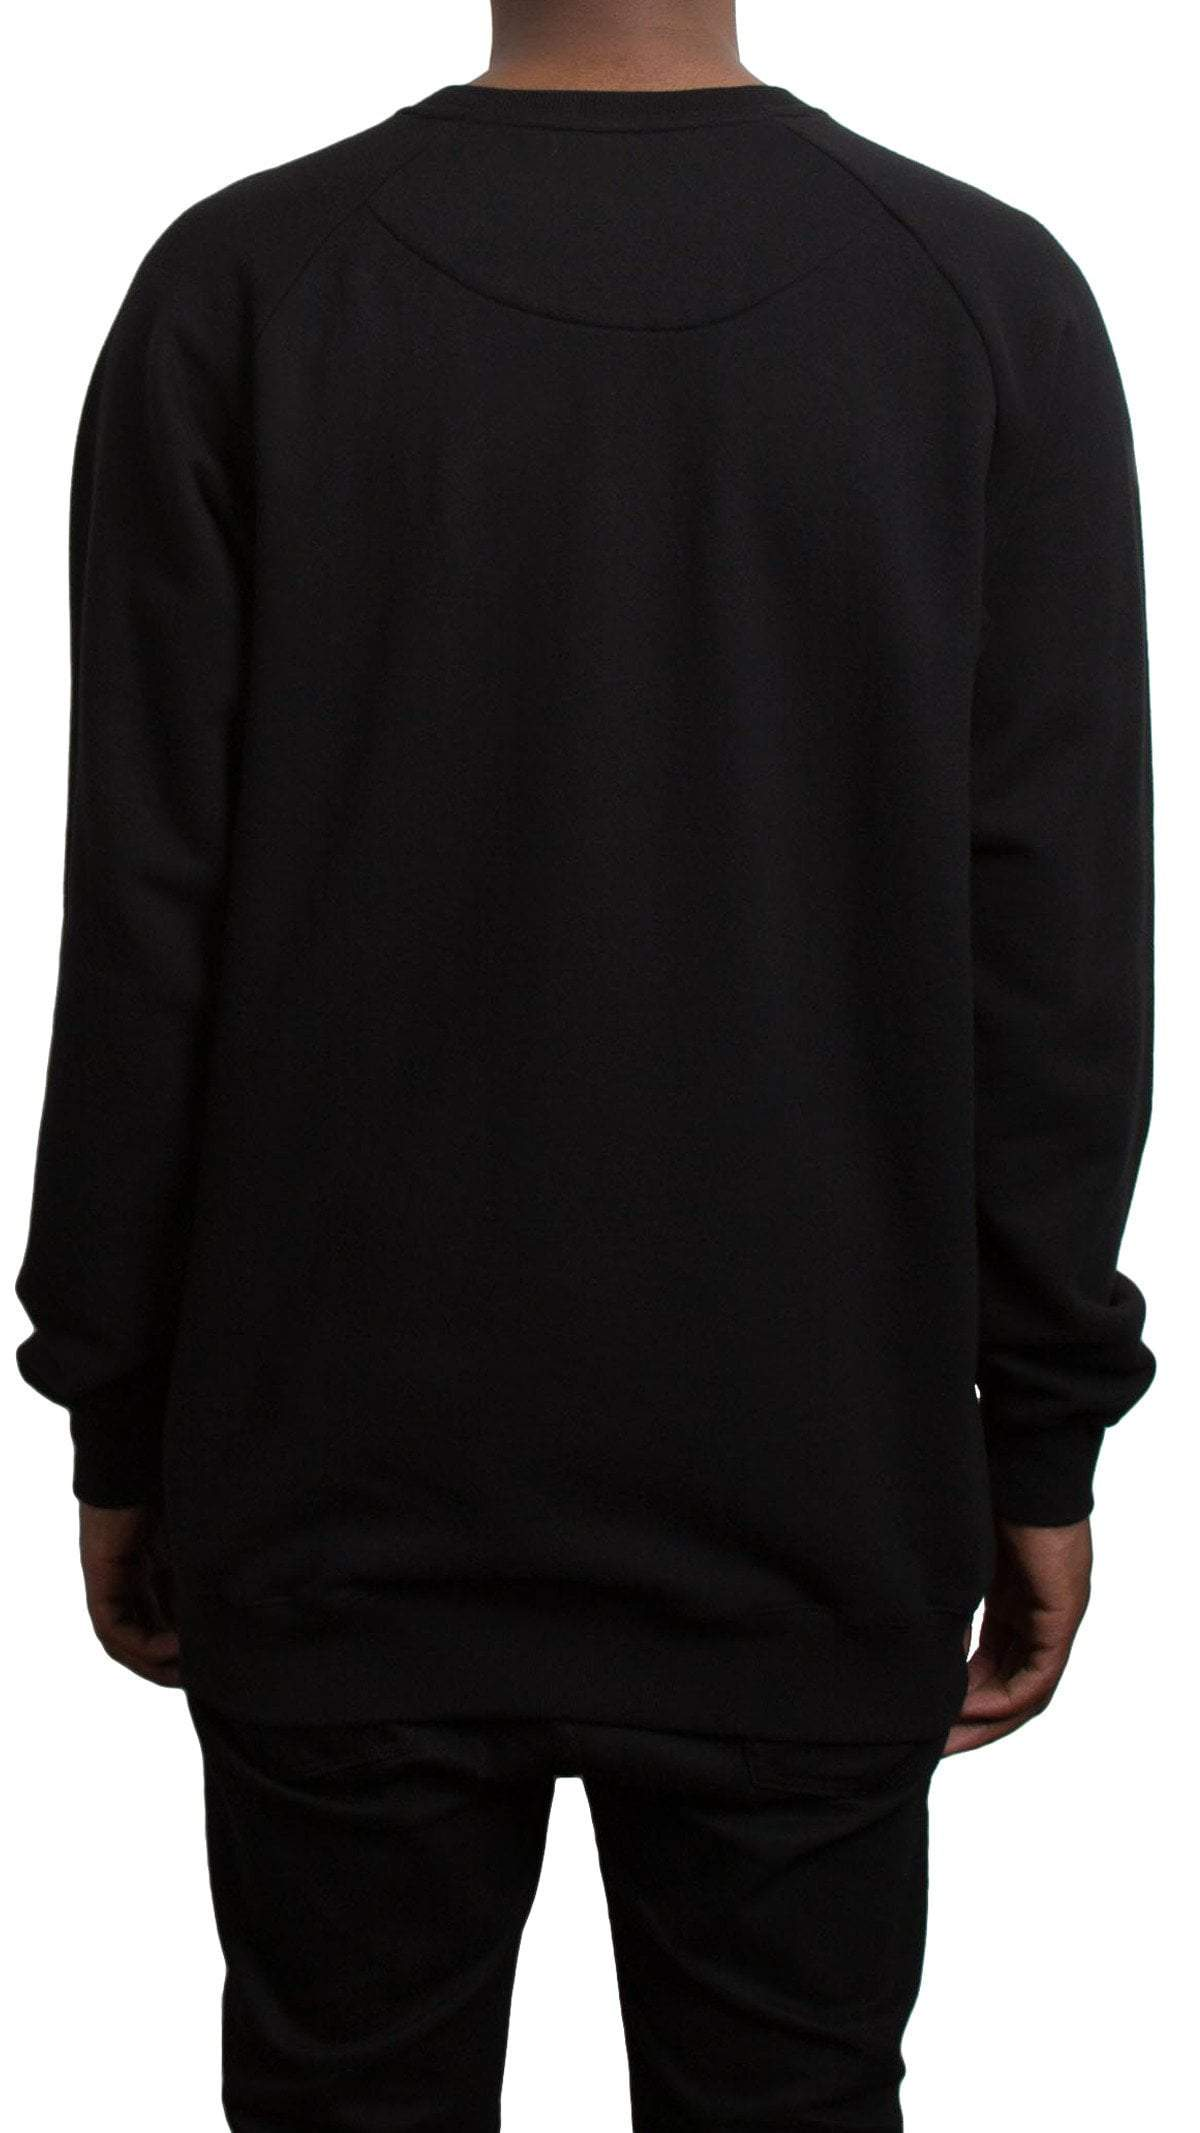 profitxloss.com Crew Neck Select Size / Black/ Red SCRIPT - RAGLAN SWEATSHIRT